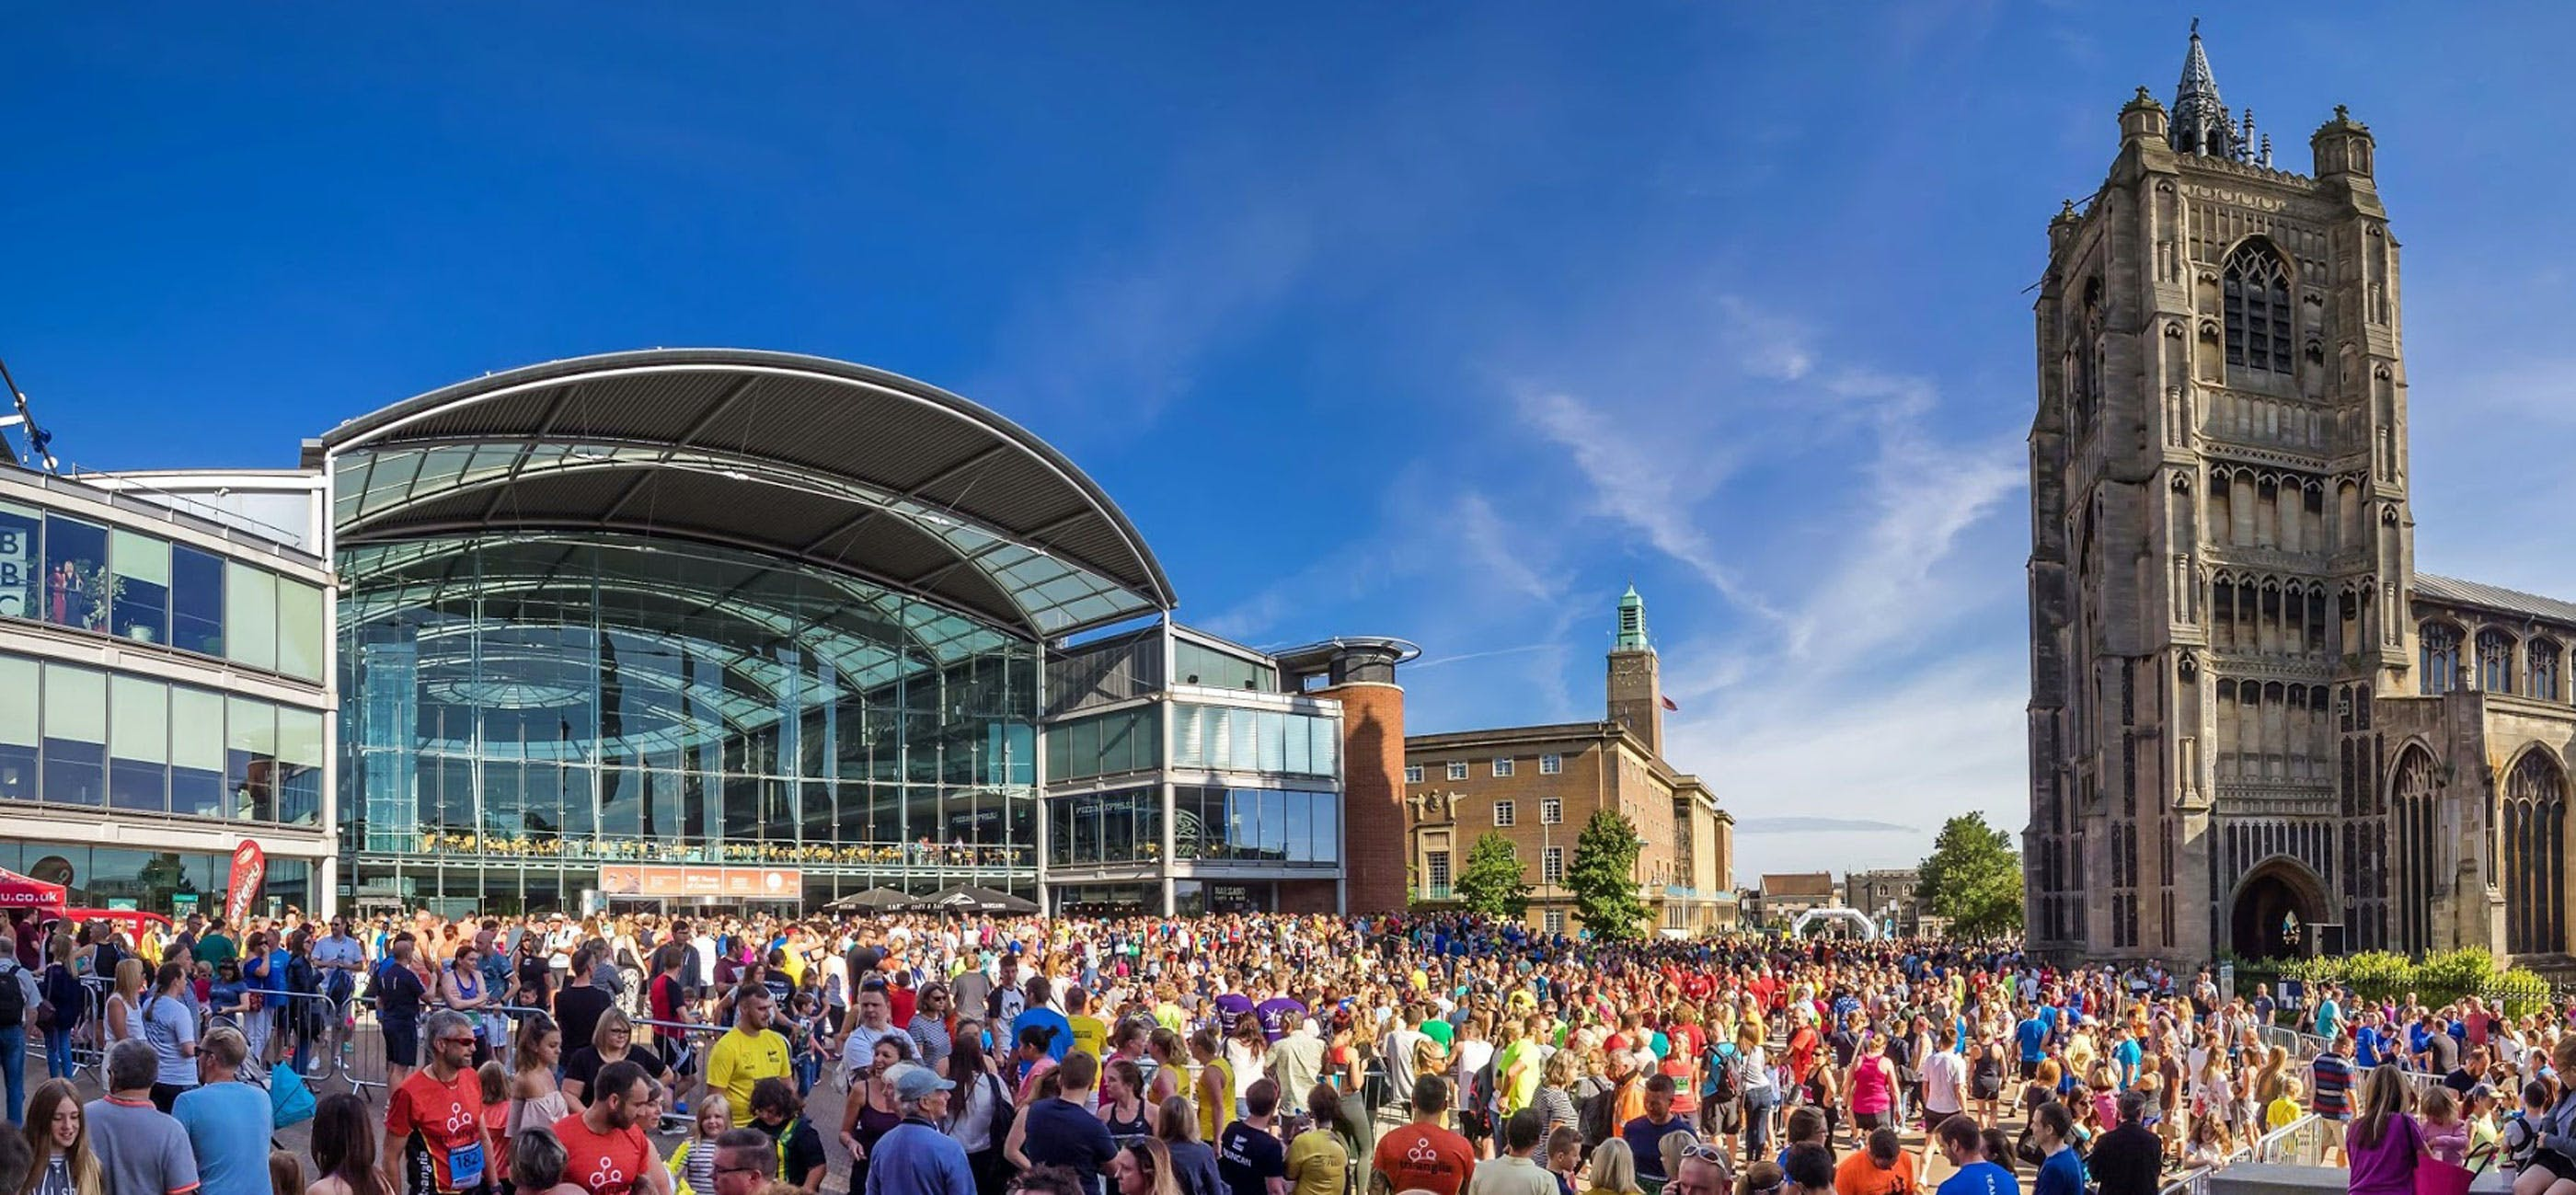 Crowds gathered outside The Forum for Run Norwich